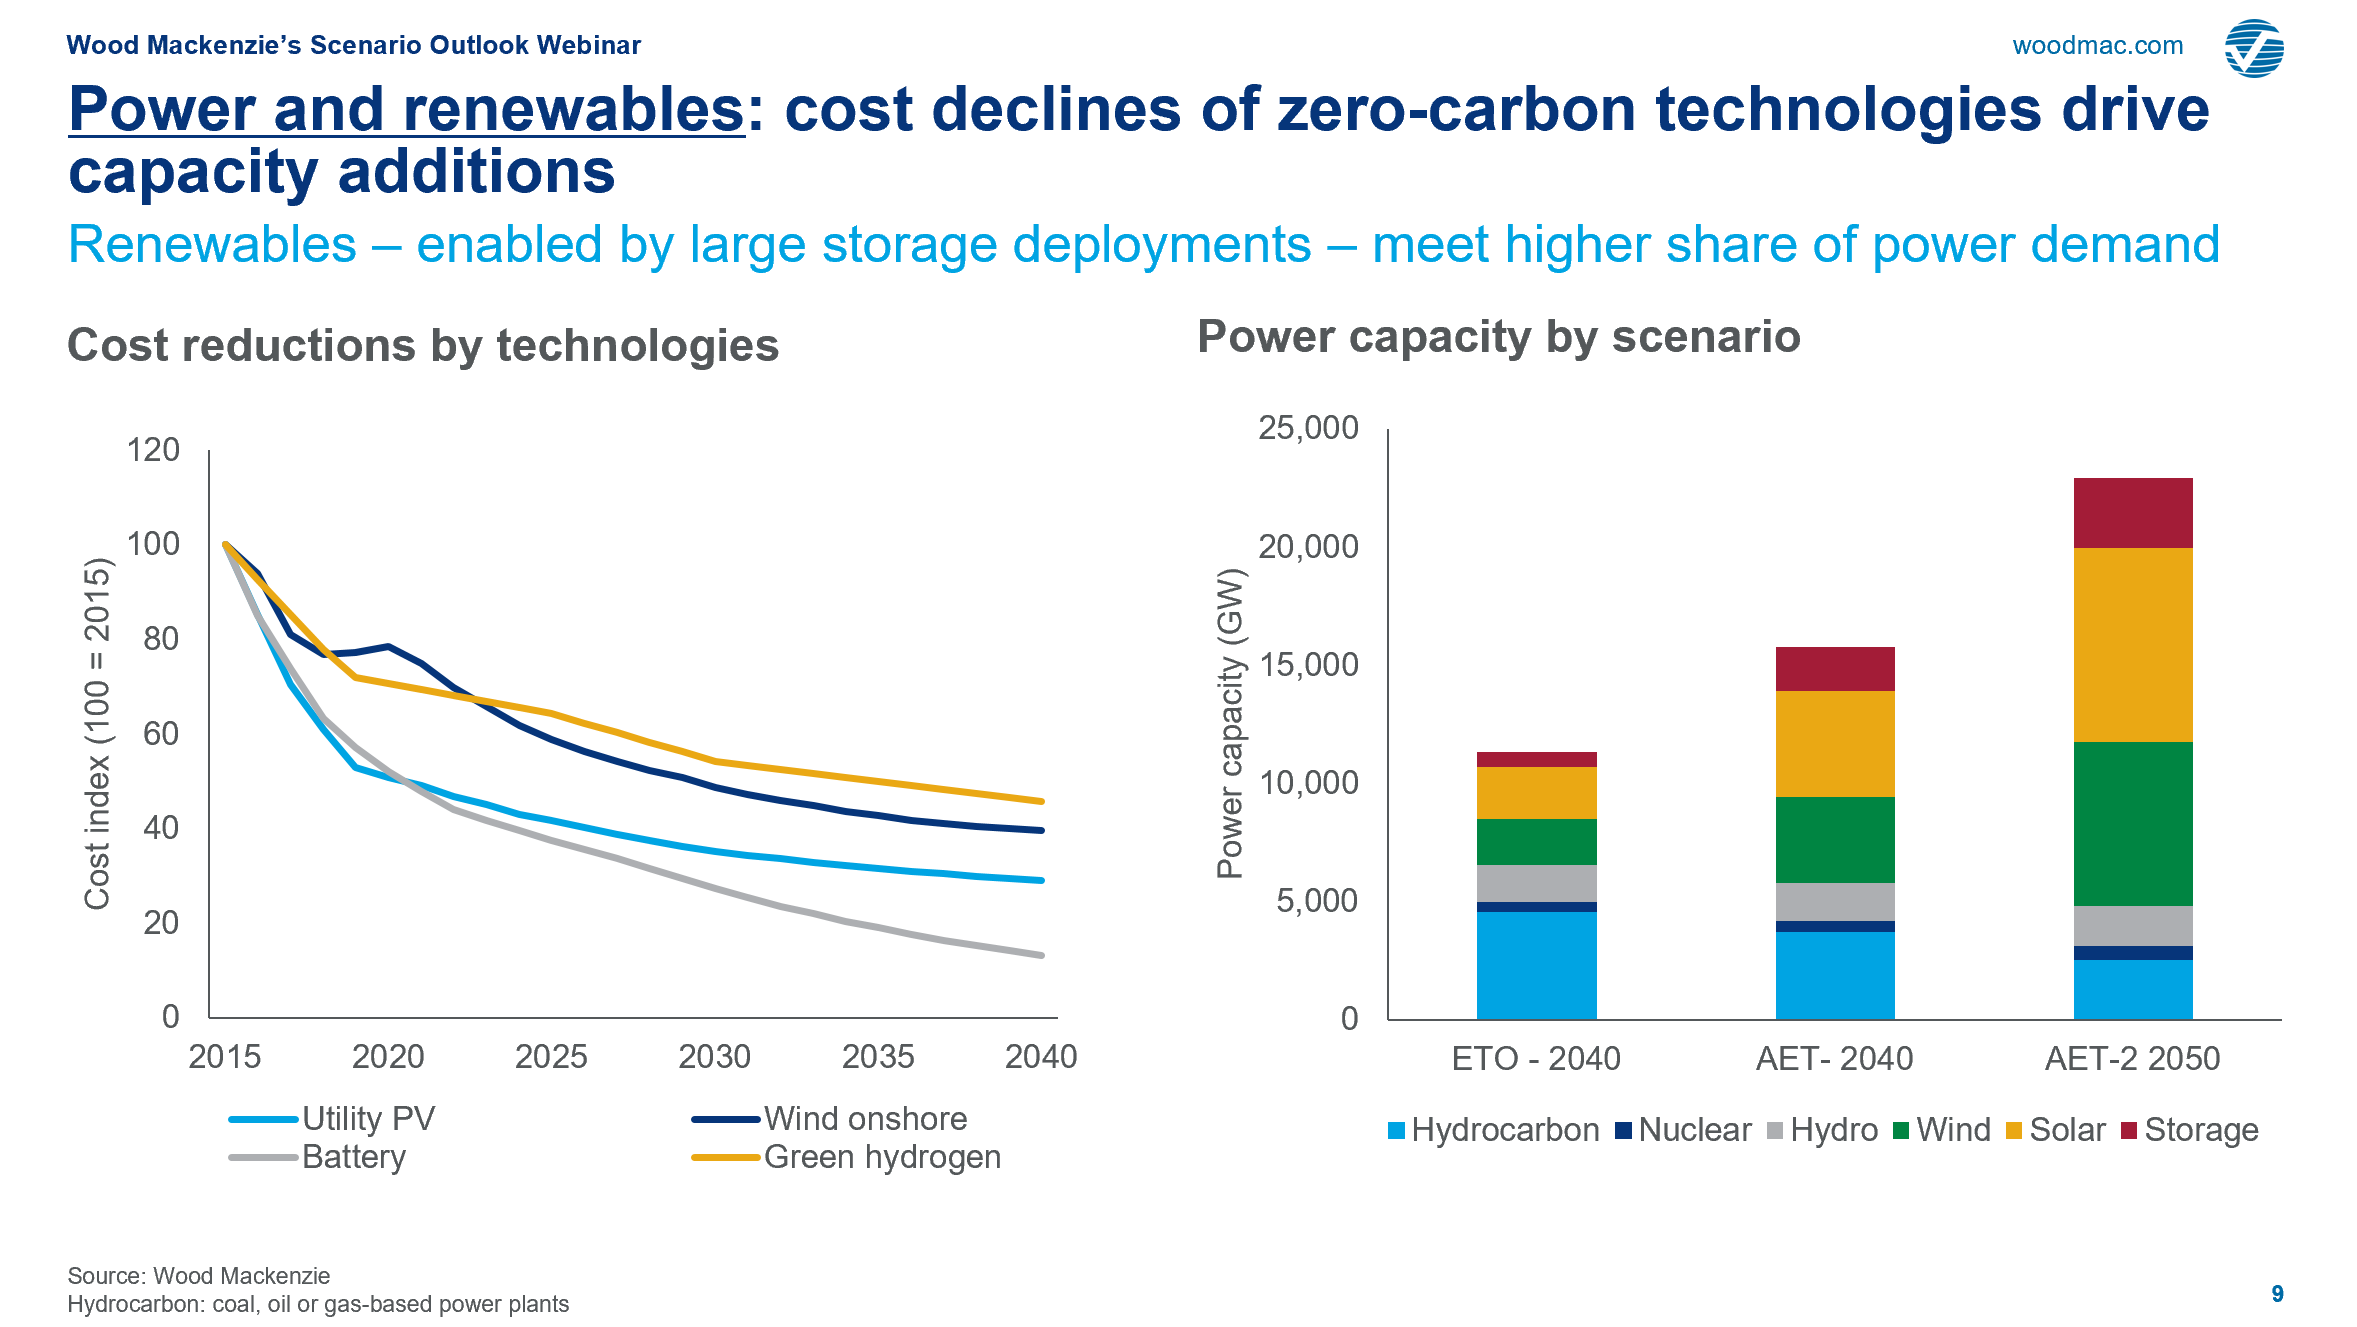 Power and renewables: cost declinesof zero-carbon technologies drive capacity additions